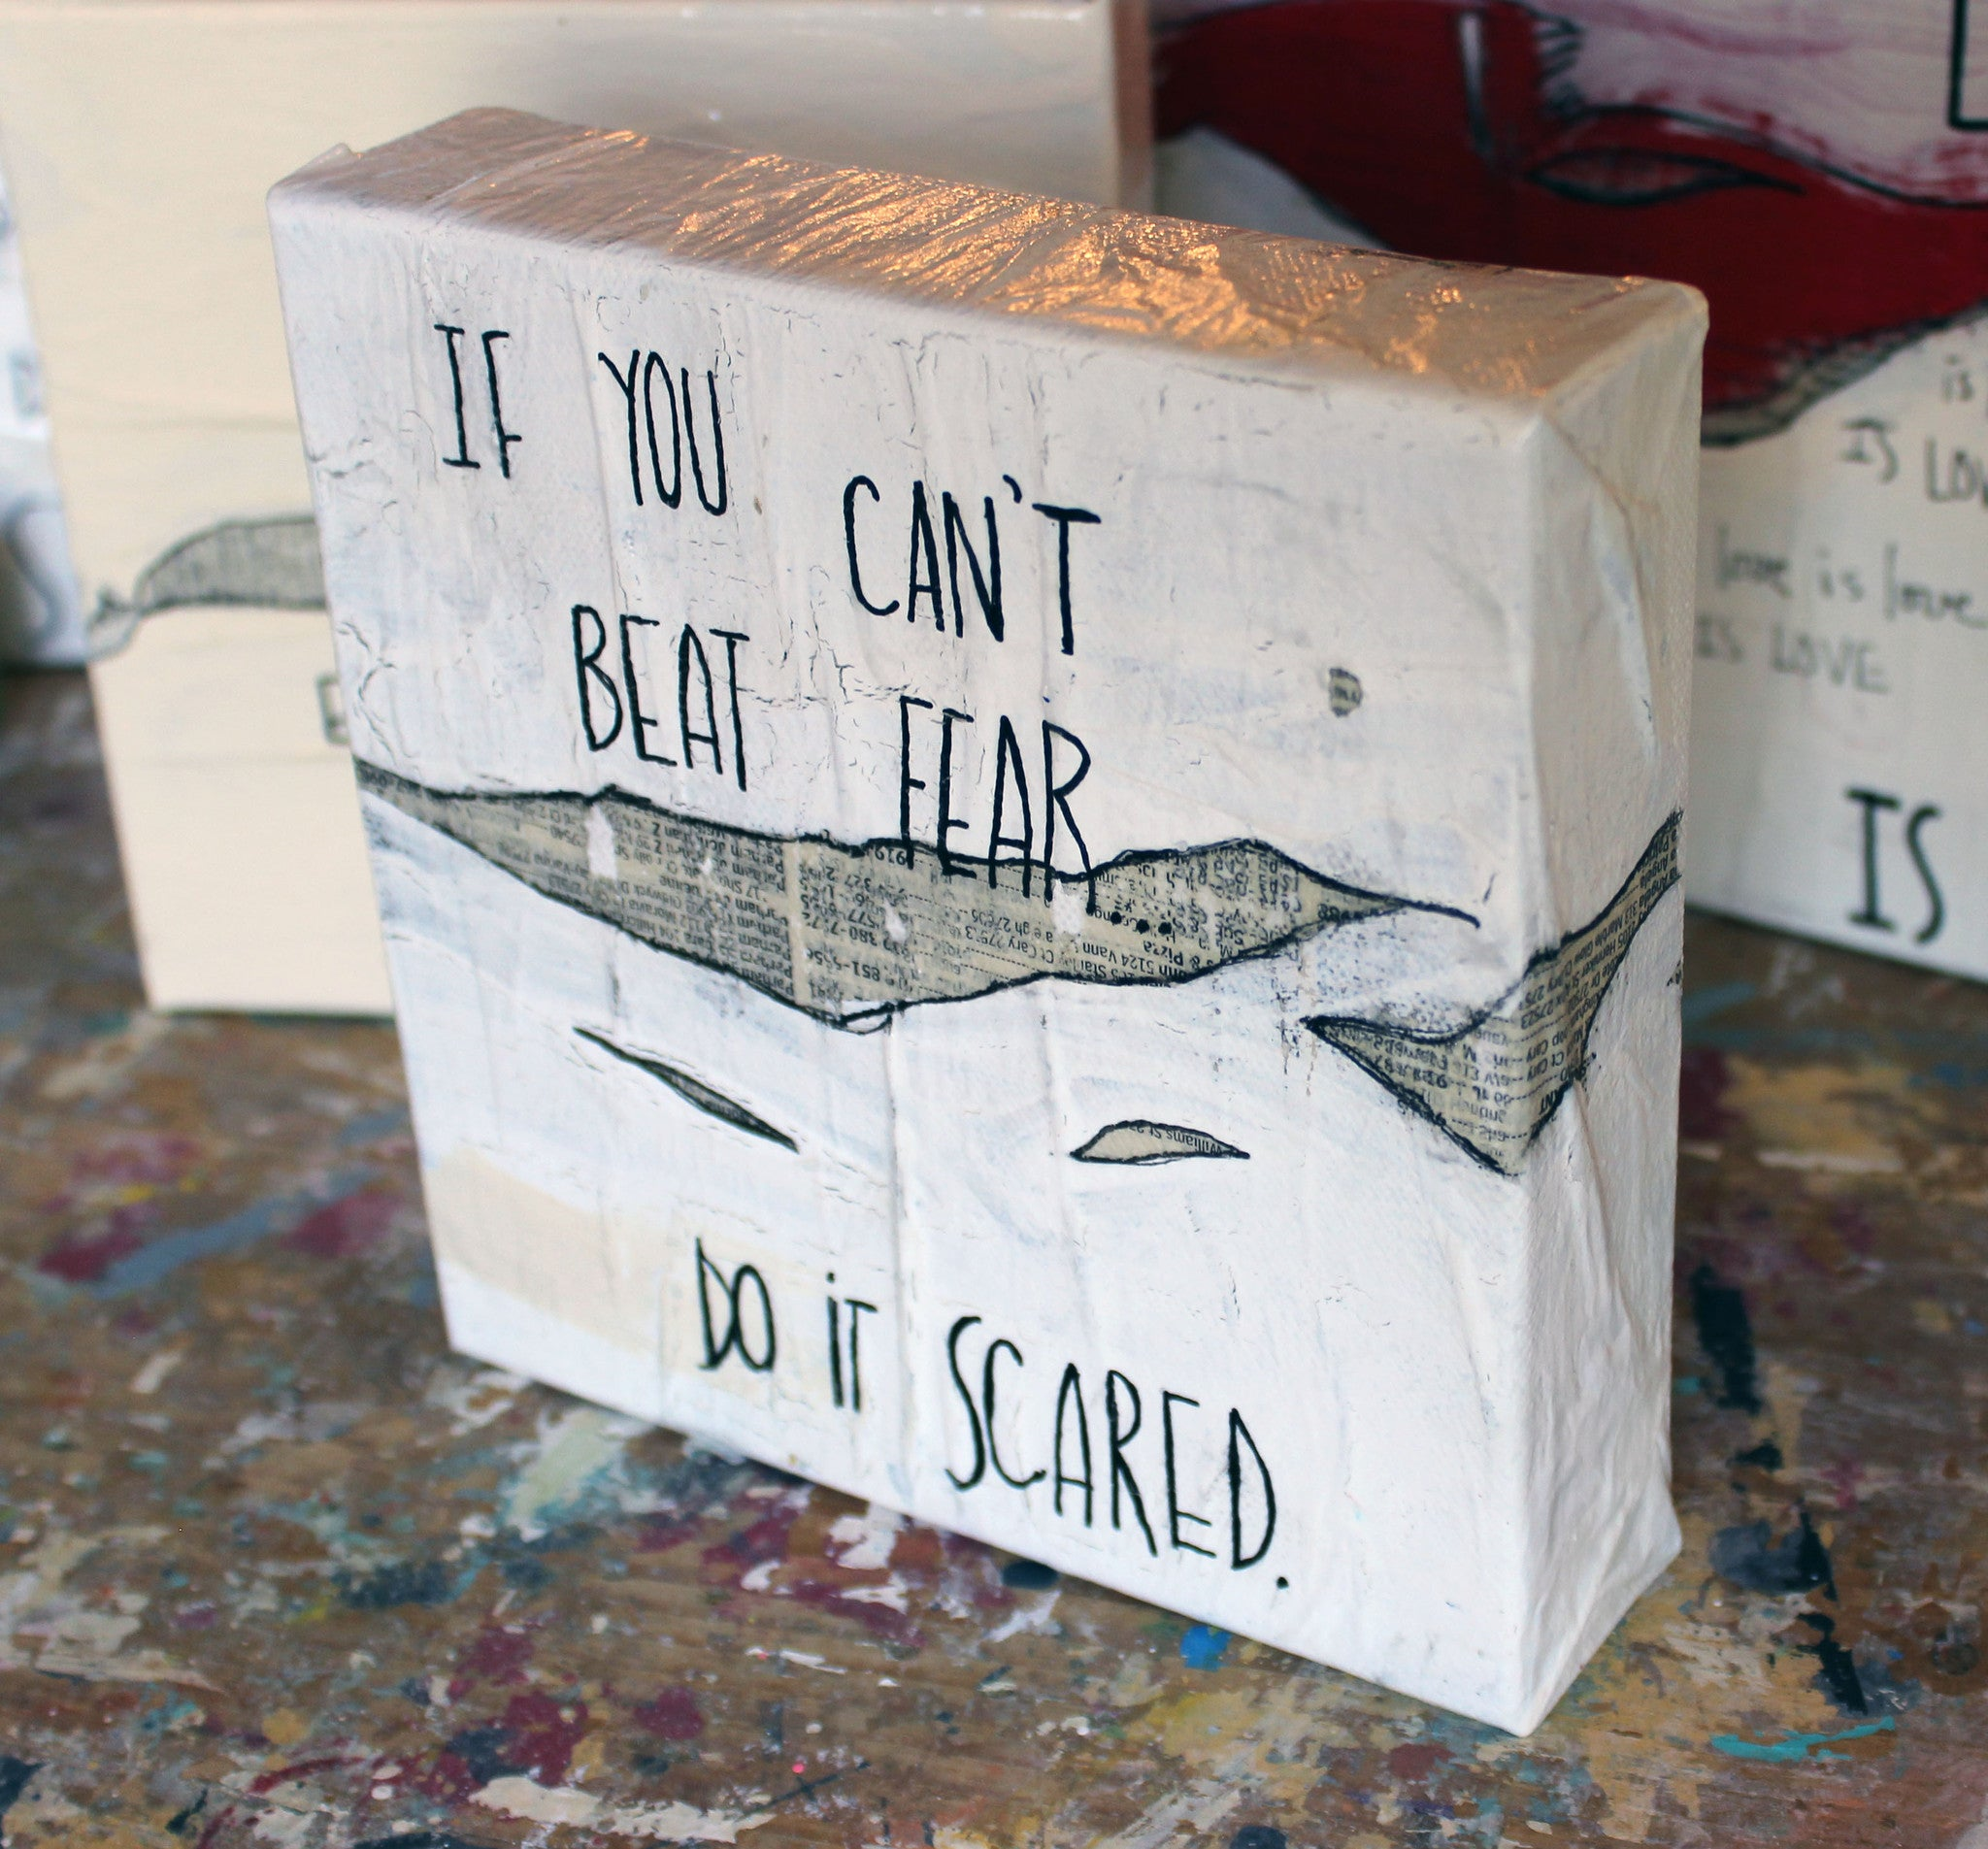 beat fear..do it scared canvas word art